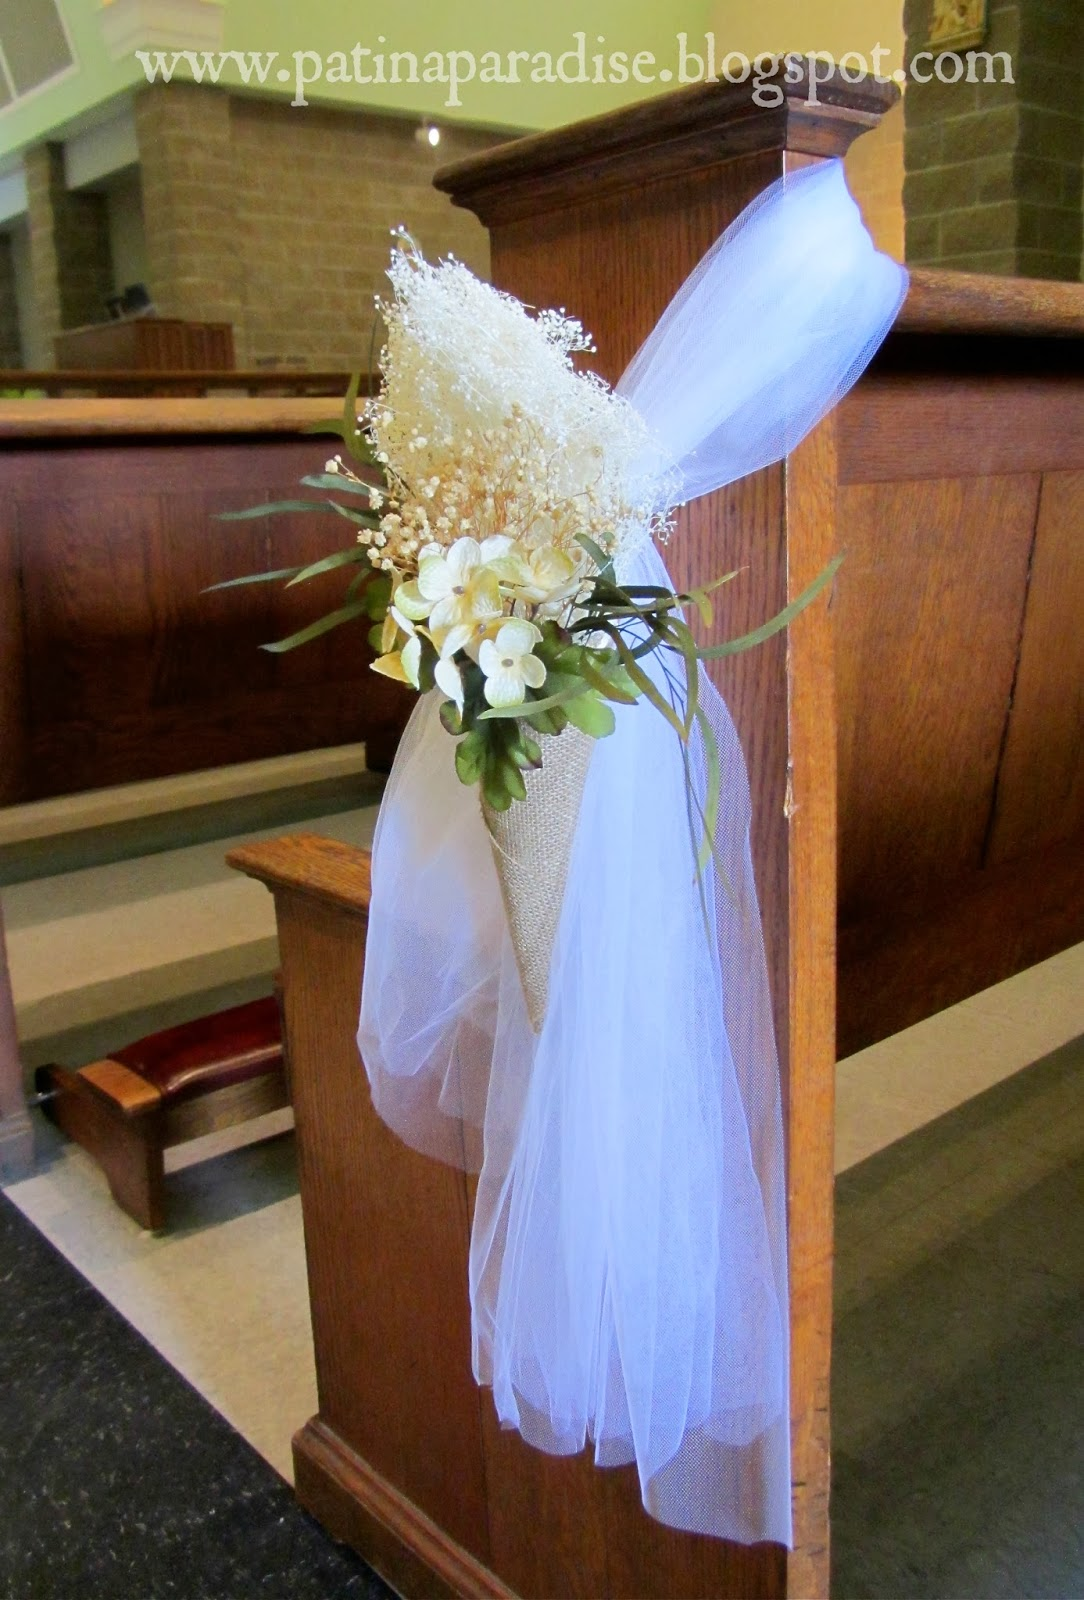 Church pew decorations for sale k 2017 for Marriage decorative items